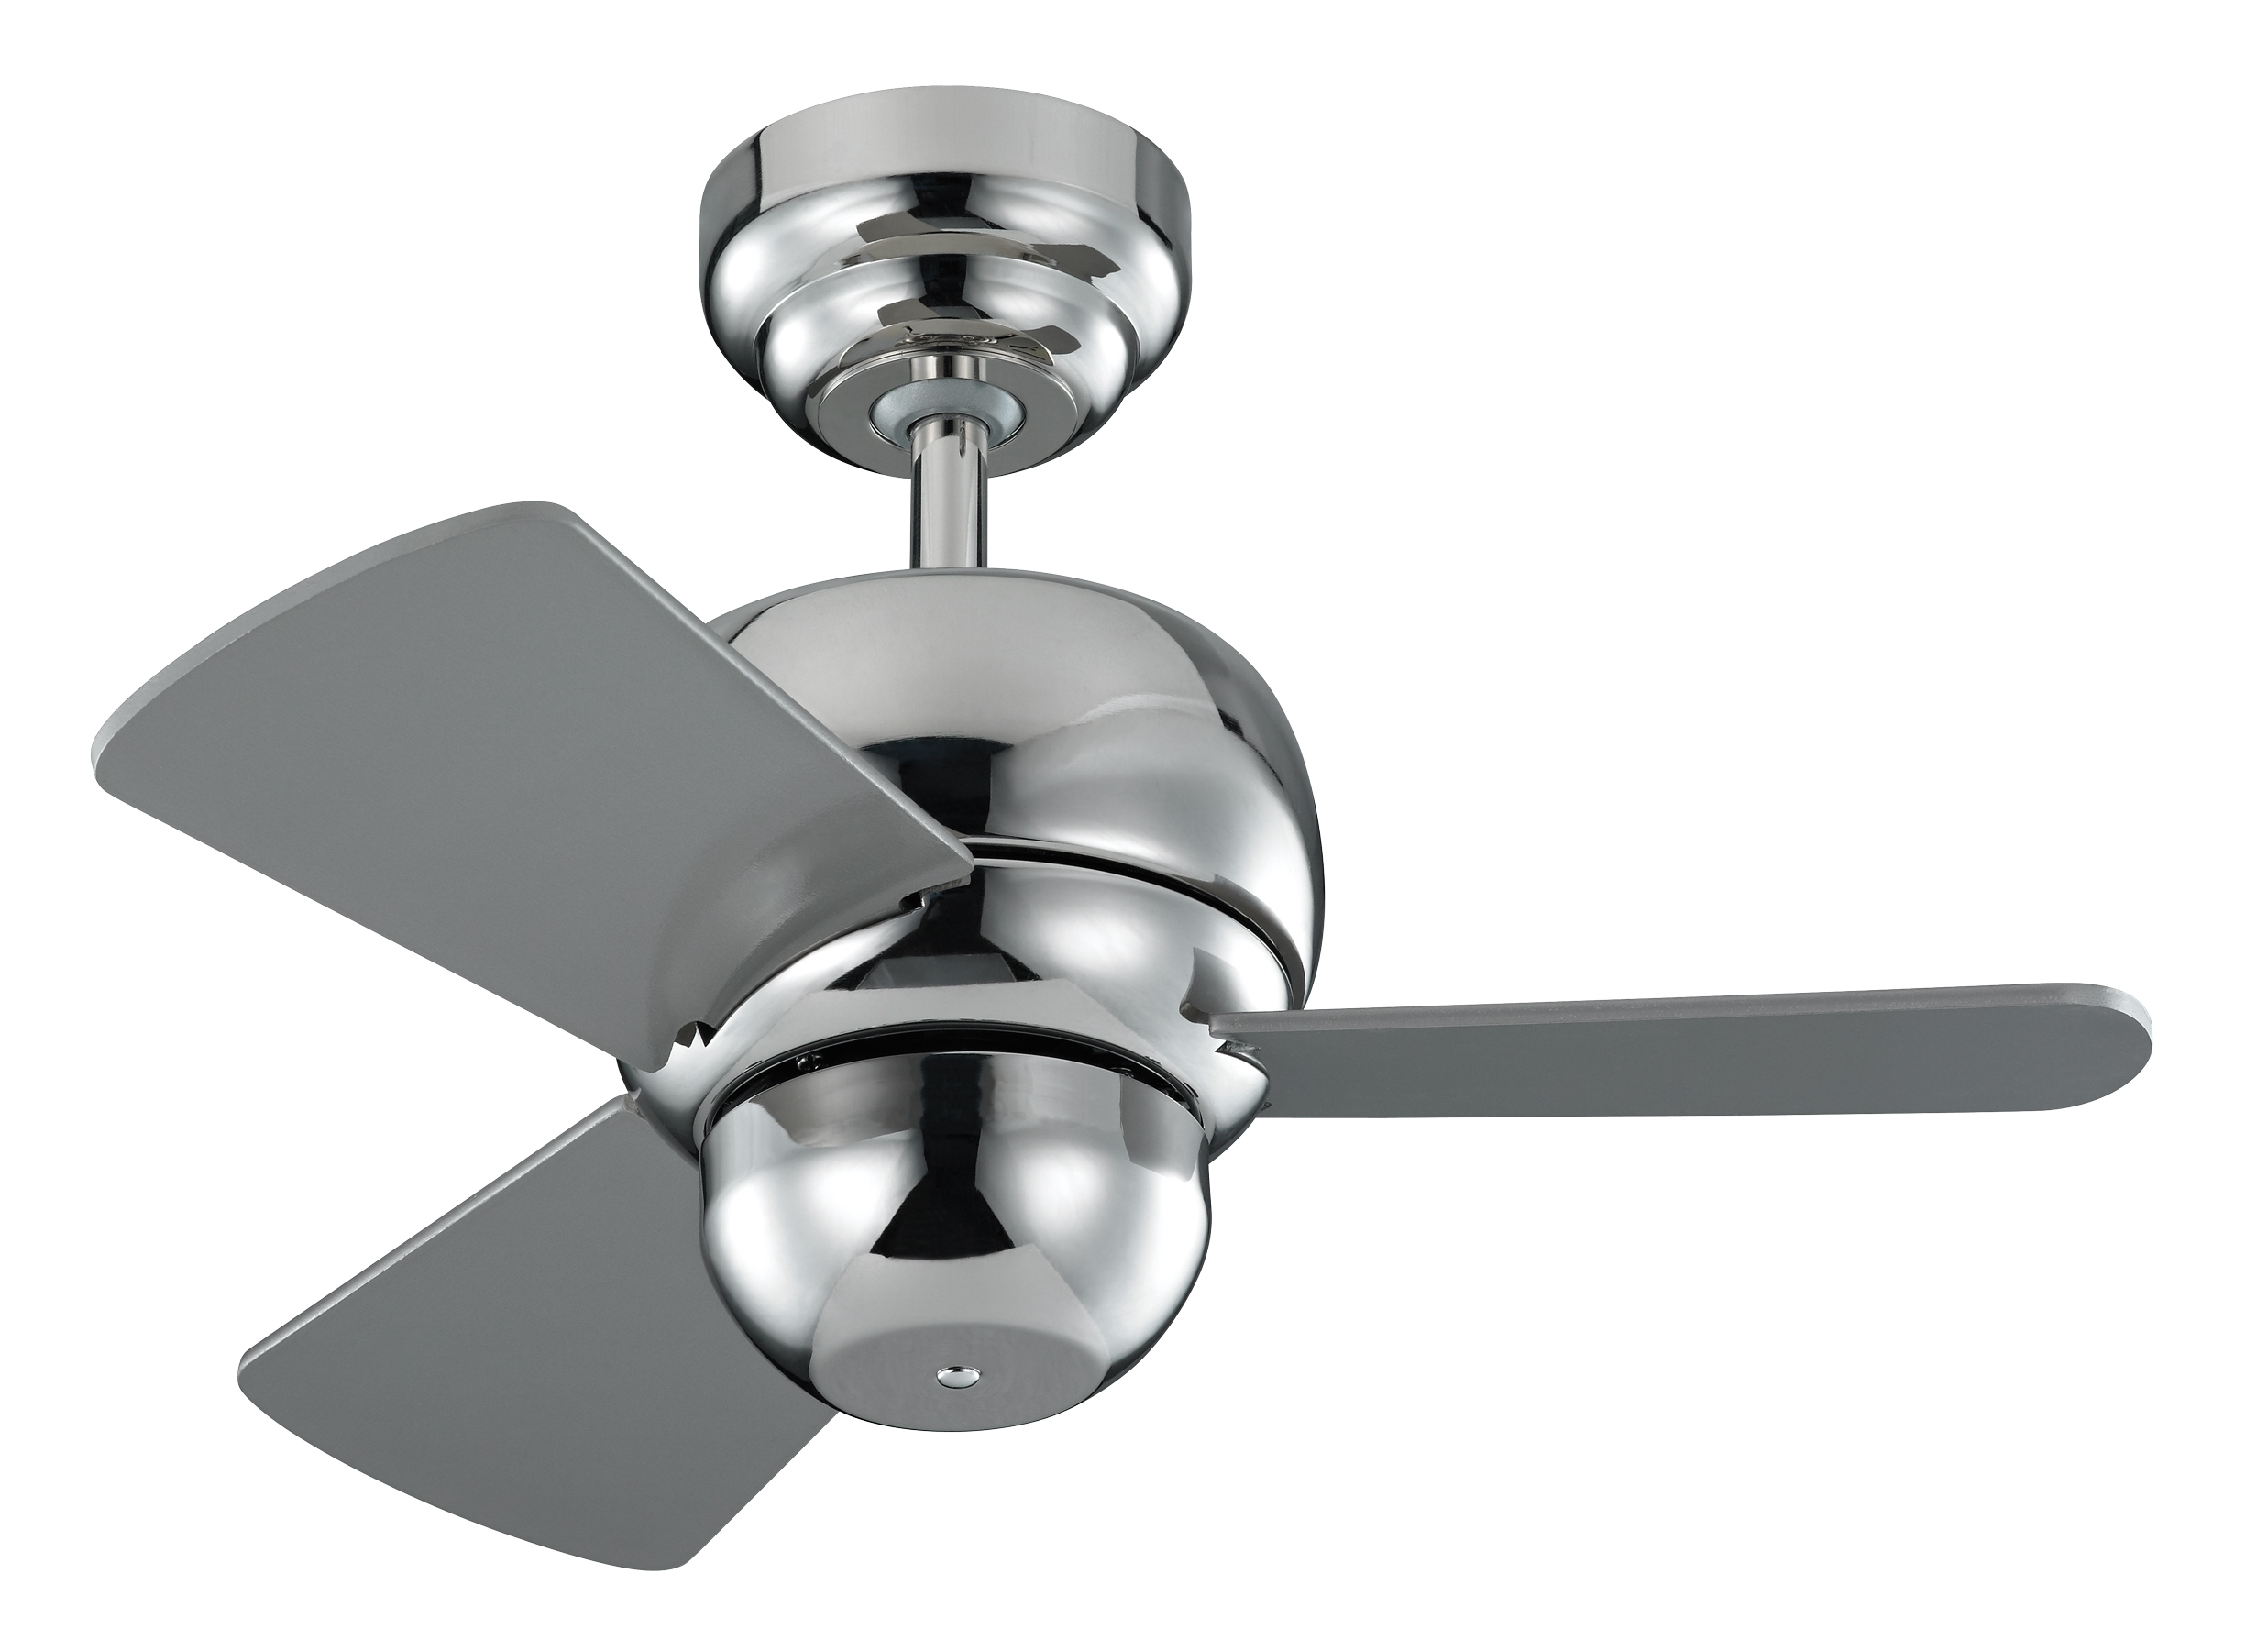 Best And Newest 20 Inch Outdoor Ceiling Fans With Light With Regard To Ceiling Fan: Recomended Mini Ceiling Fan For Home Mini Ceiling Fan (View 4 of 20)